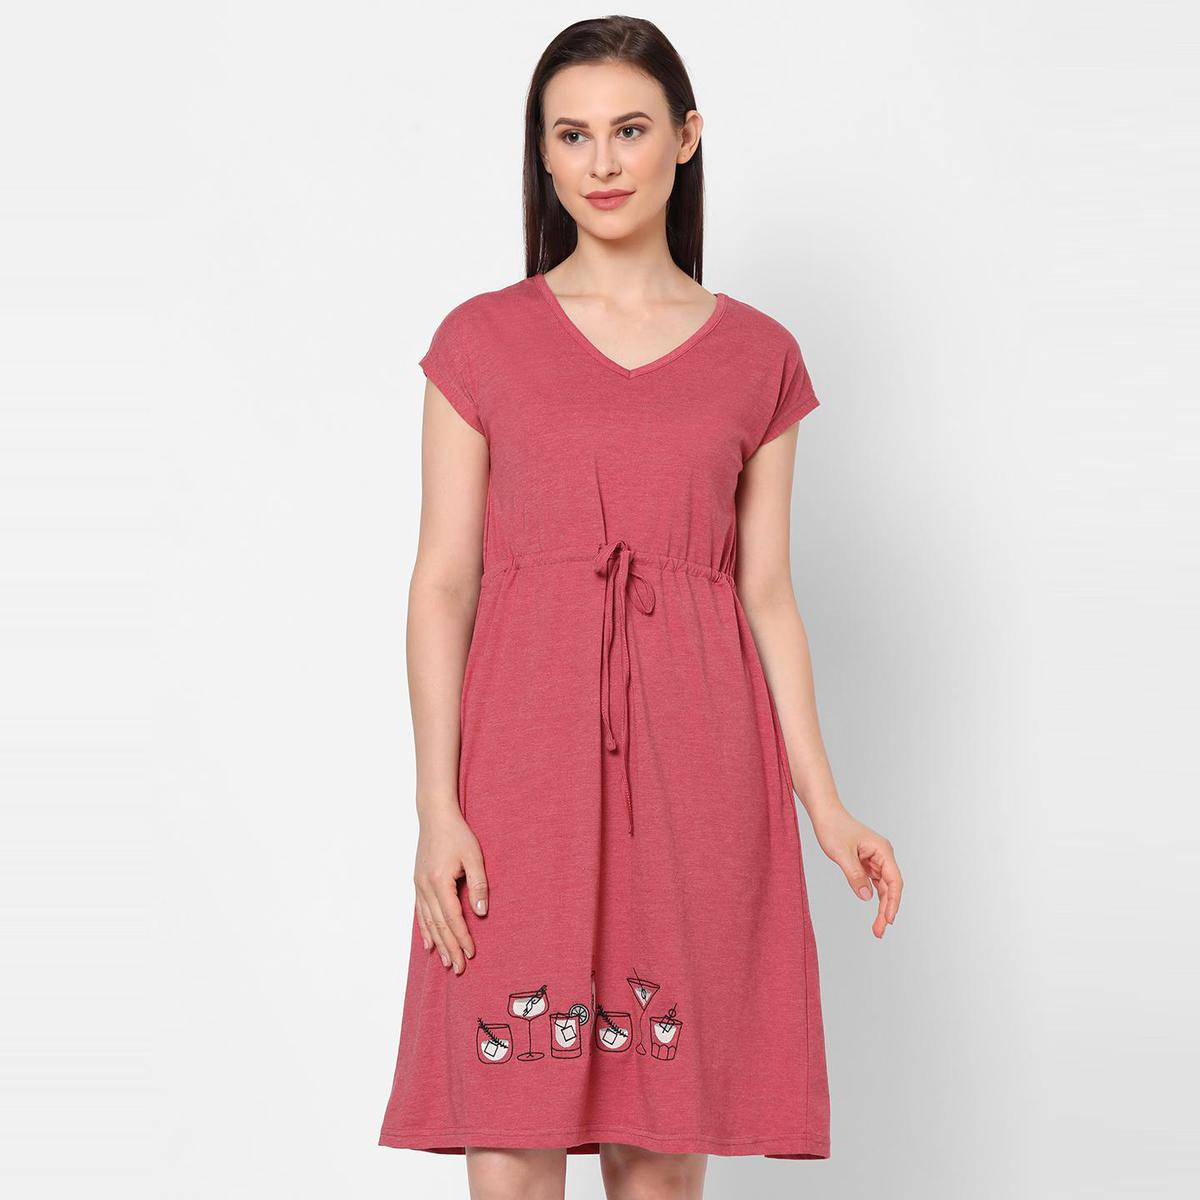 Mystere Paris - Red Colored Cocktail Embroidered Cotton Sleep Dress